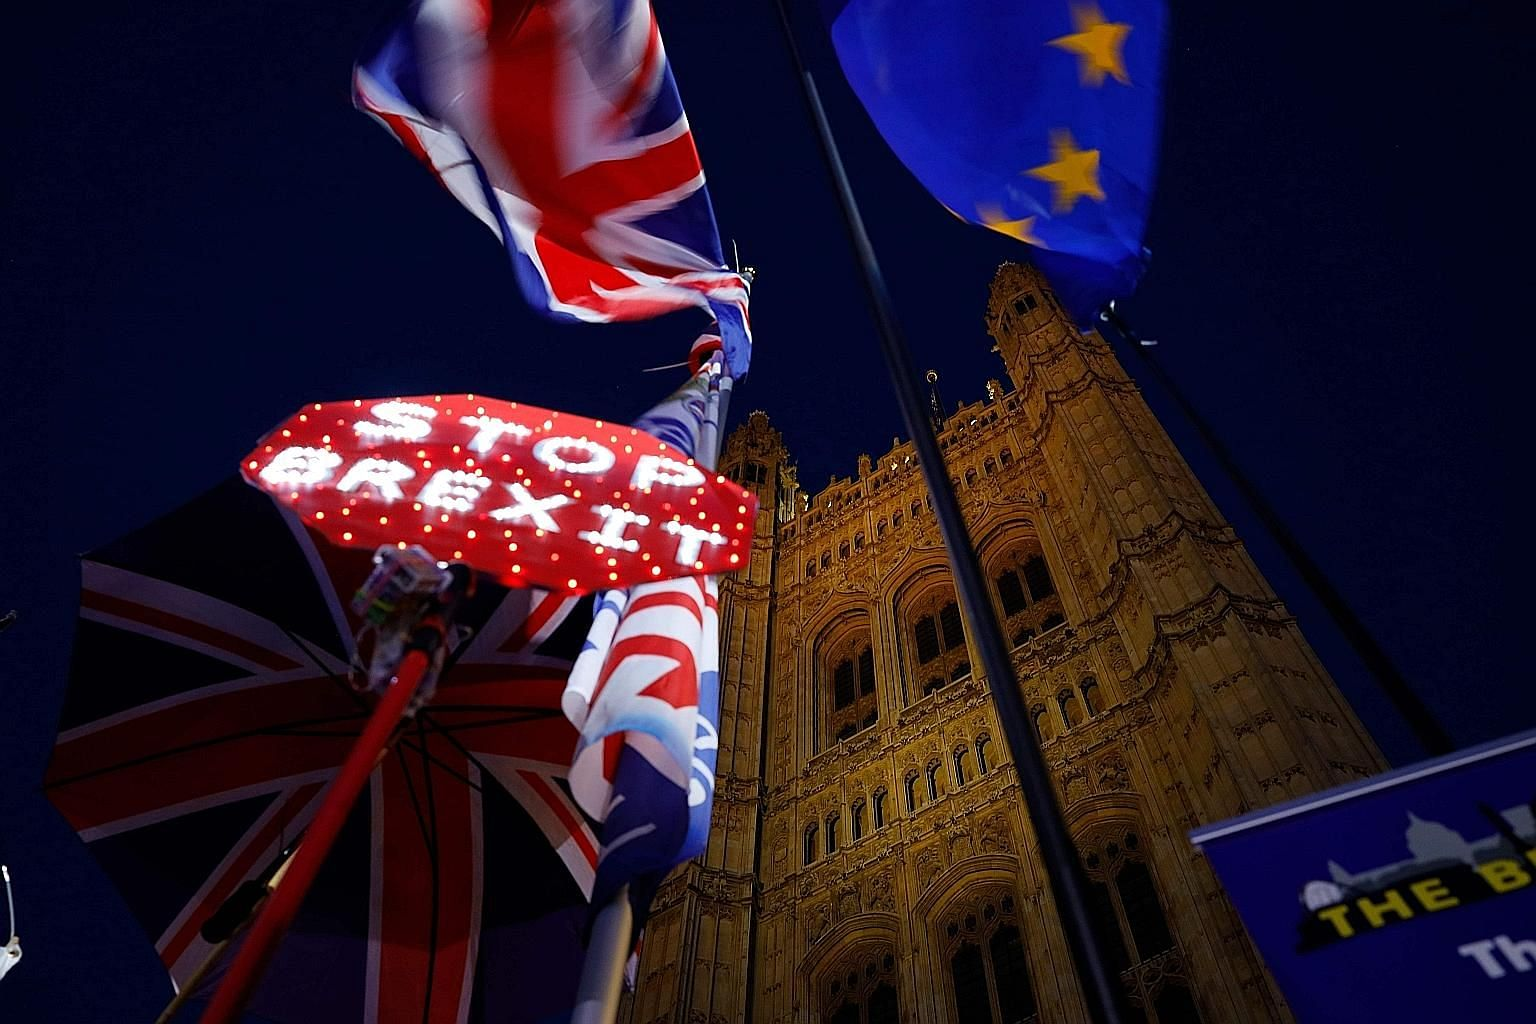 Banners, the Union Jack and EU flag outside the Houses of Parliament in London on Tuesday, as MPs debated the second reading of the British government's European Union Withdrawal Agreement Bill.